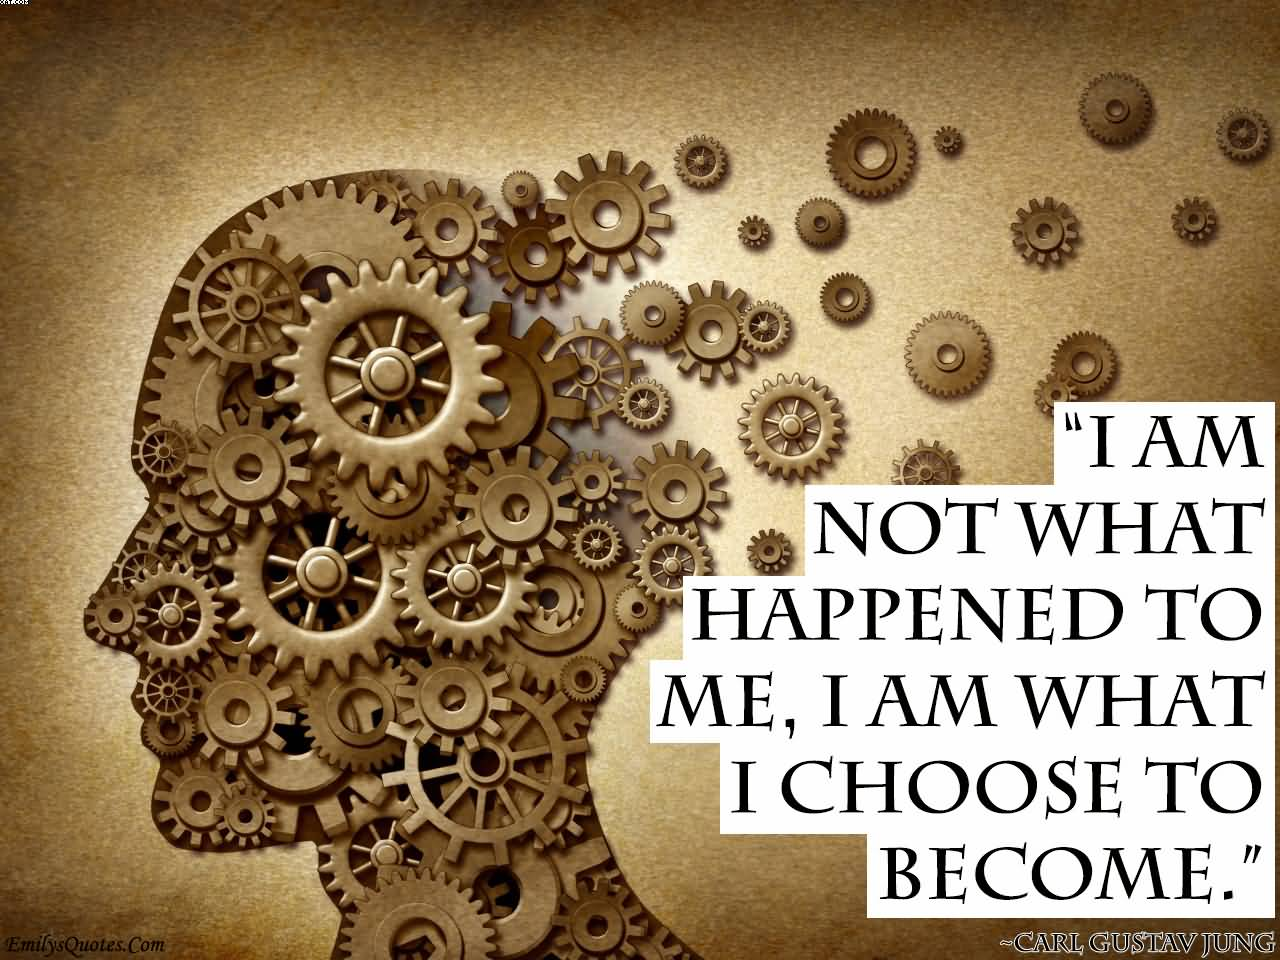 I Am Not Whta Happened To Me, I Am What I choose To become. - Choice Quotes